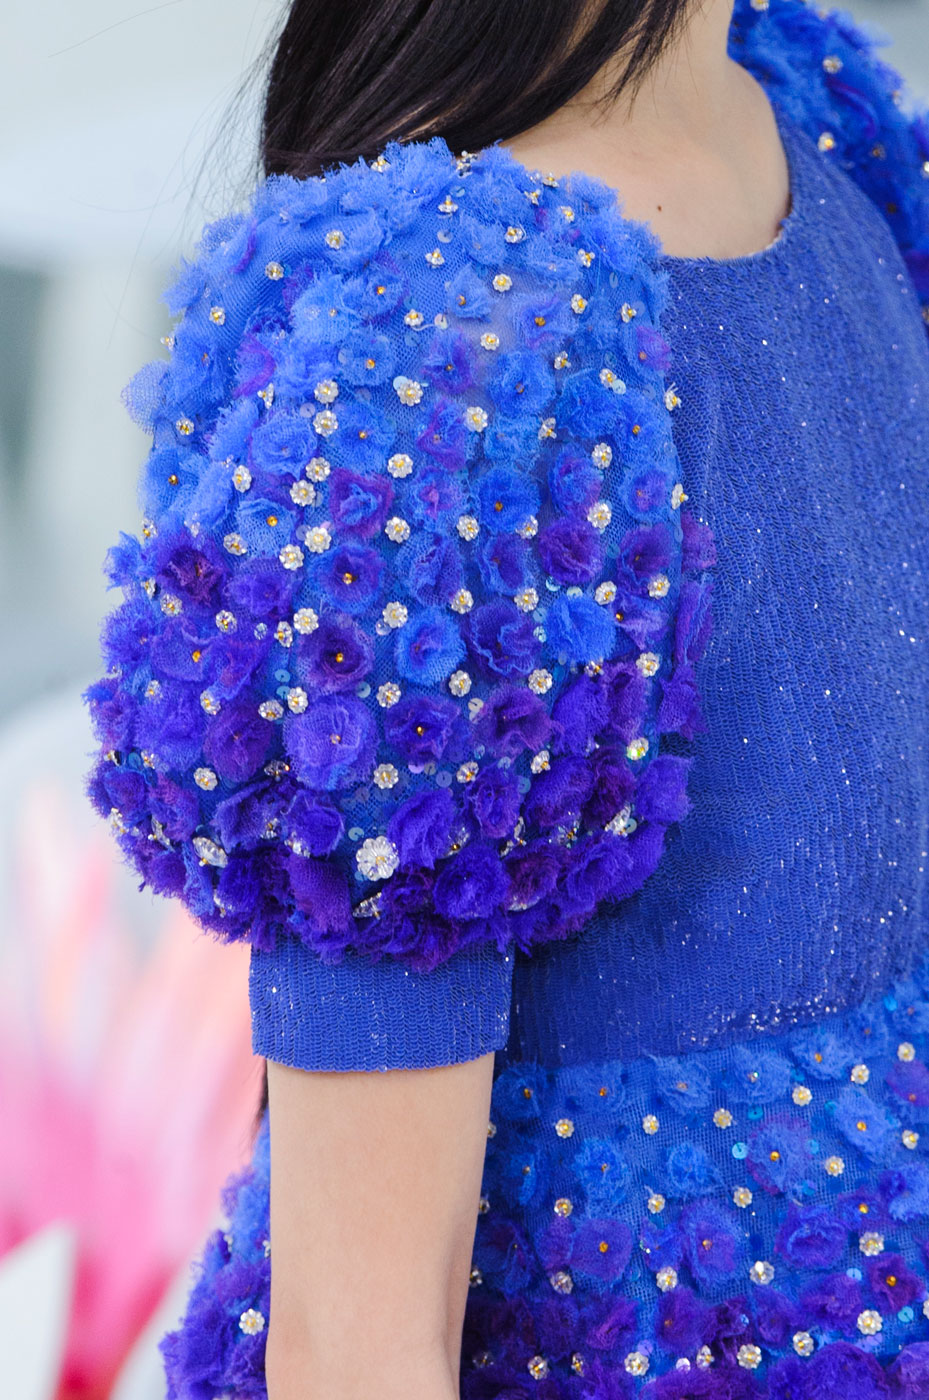 Chanel-fashion-runway-show-close-ups-haute-couture-paris-spring-summer-2015-the-impression-073